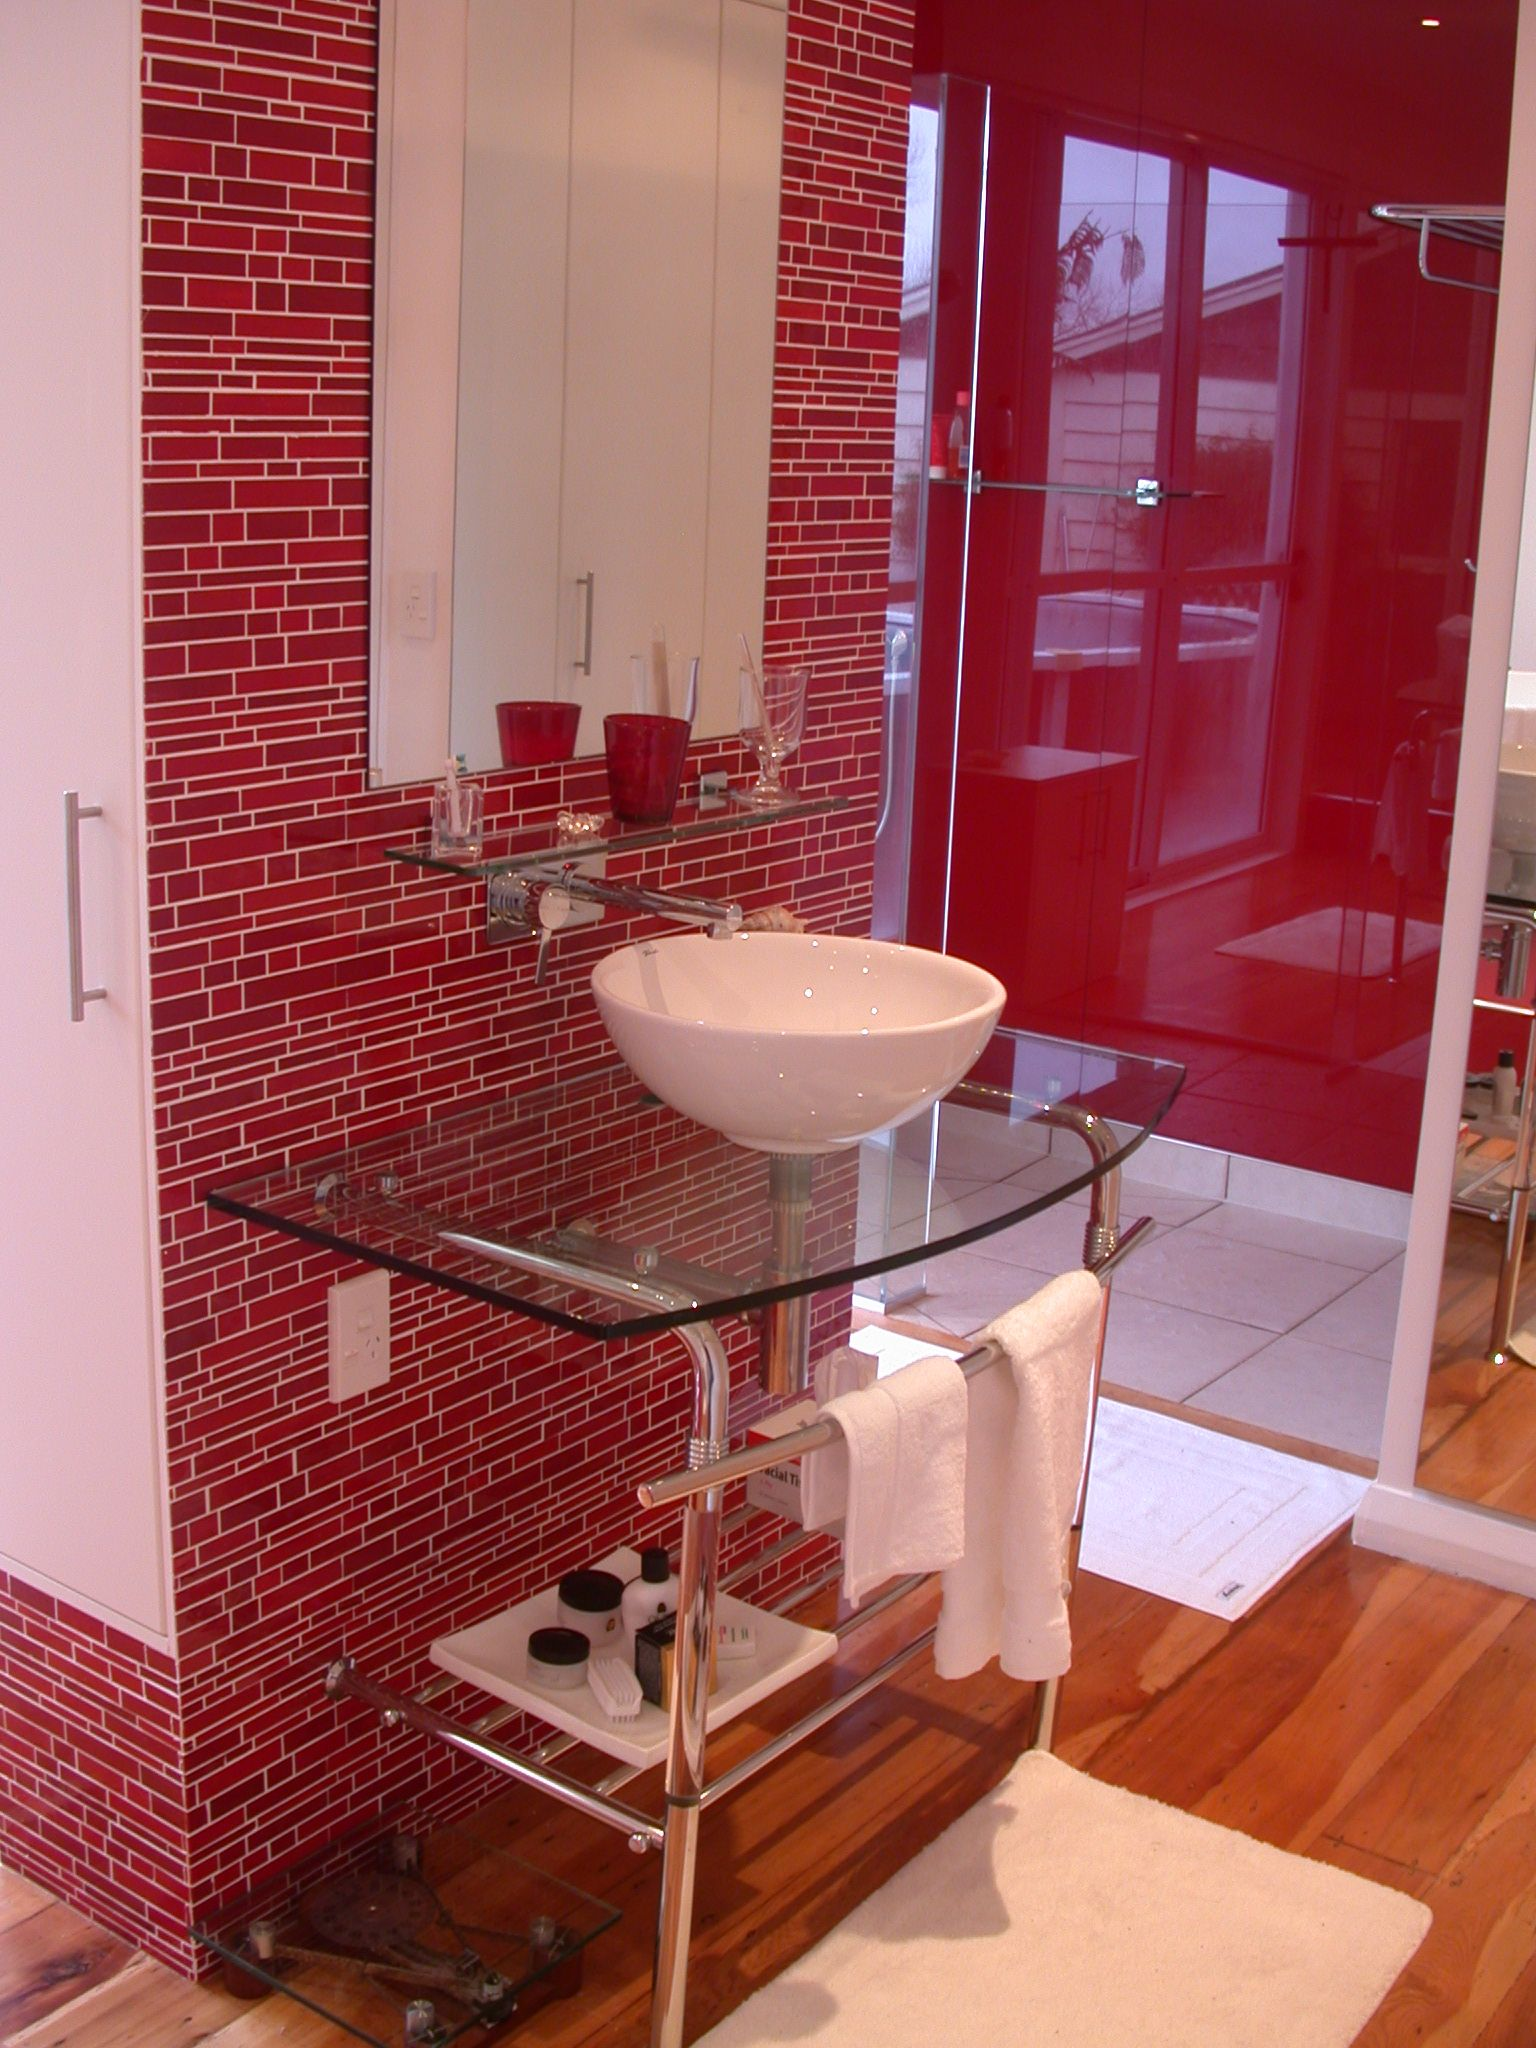 Red Tile White Grout #Colorfulbathroom #Toilettreeproducts New Small Red Bathroom